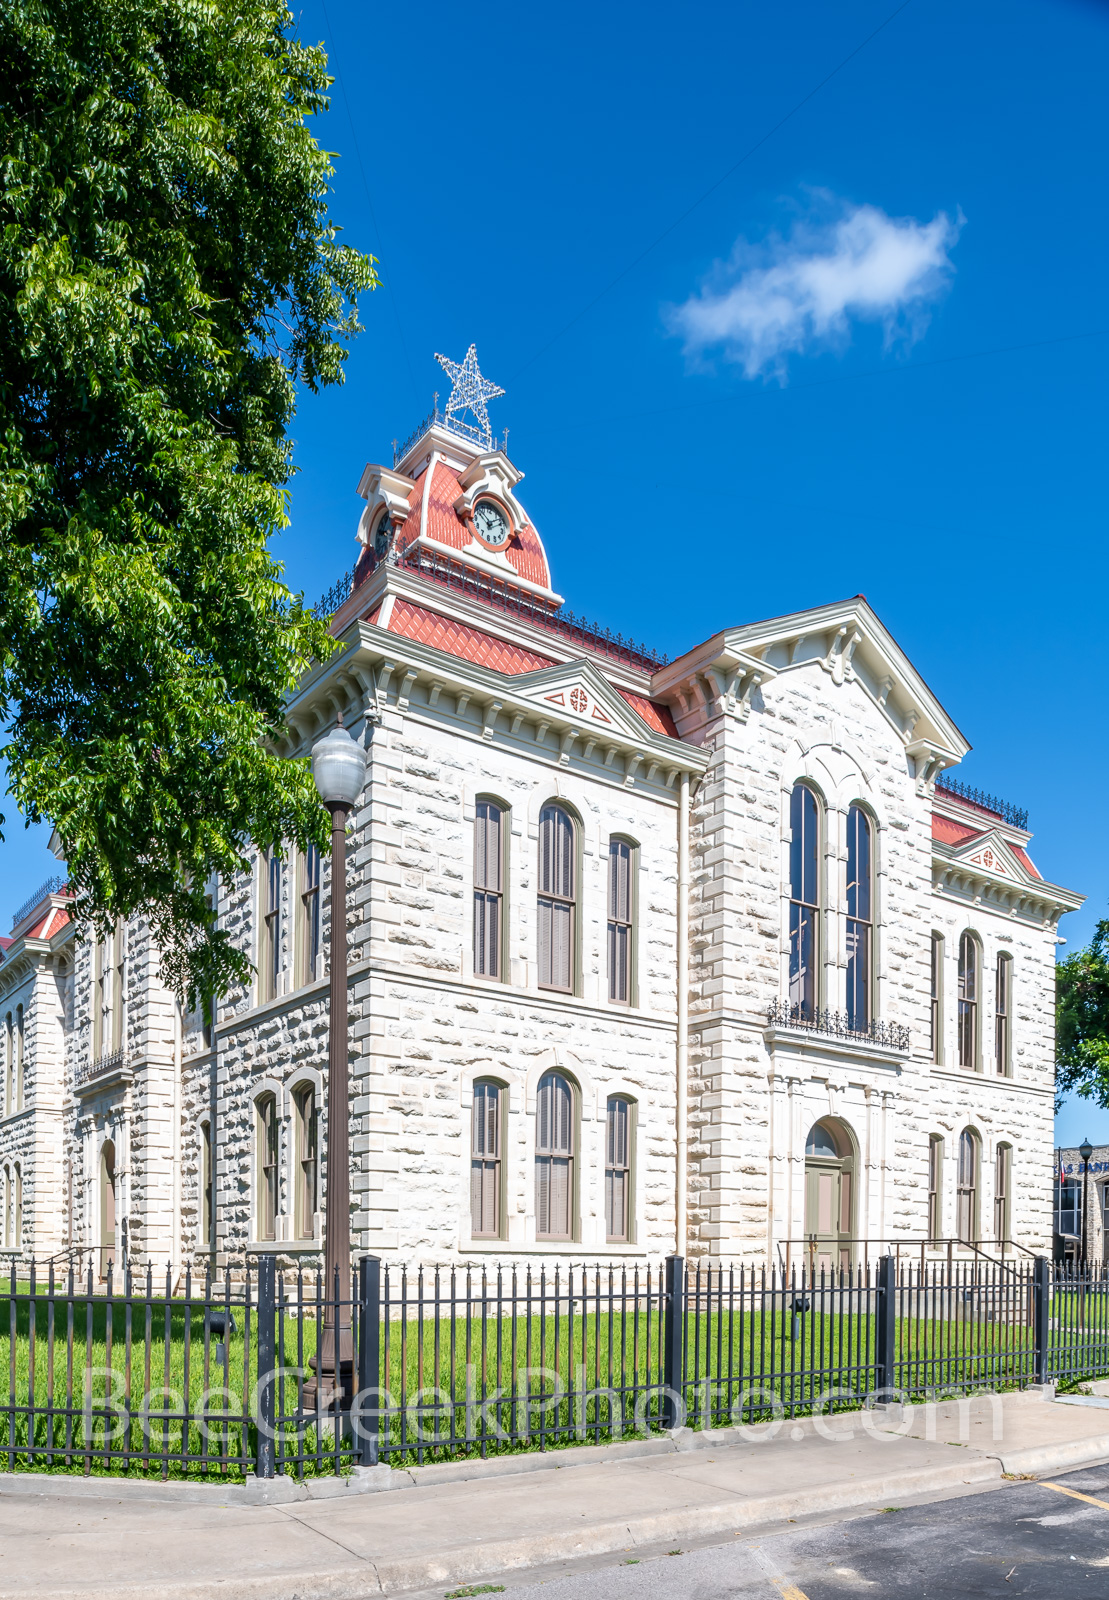 lampasas county courthouse, lampasas, court house, courthouses, texas hill country, texas, county courthouses, hill country, texas, rural, rural courthouse, trees,, photo